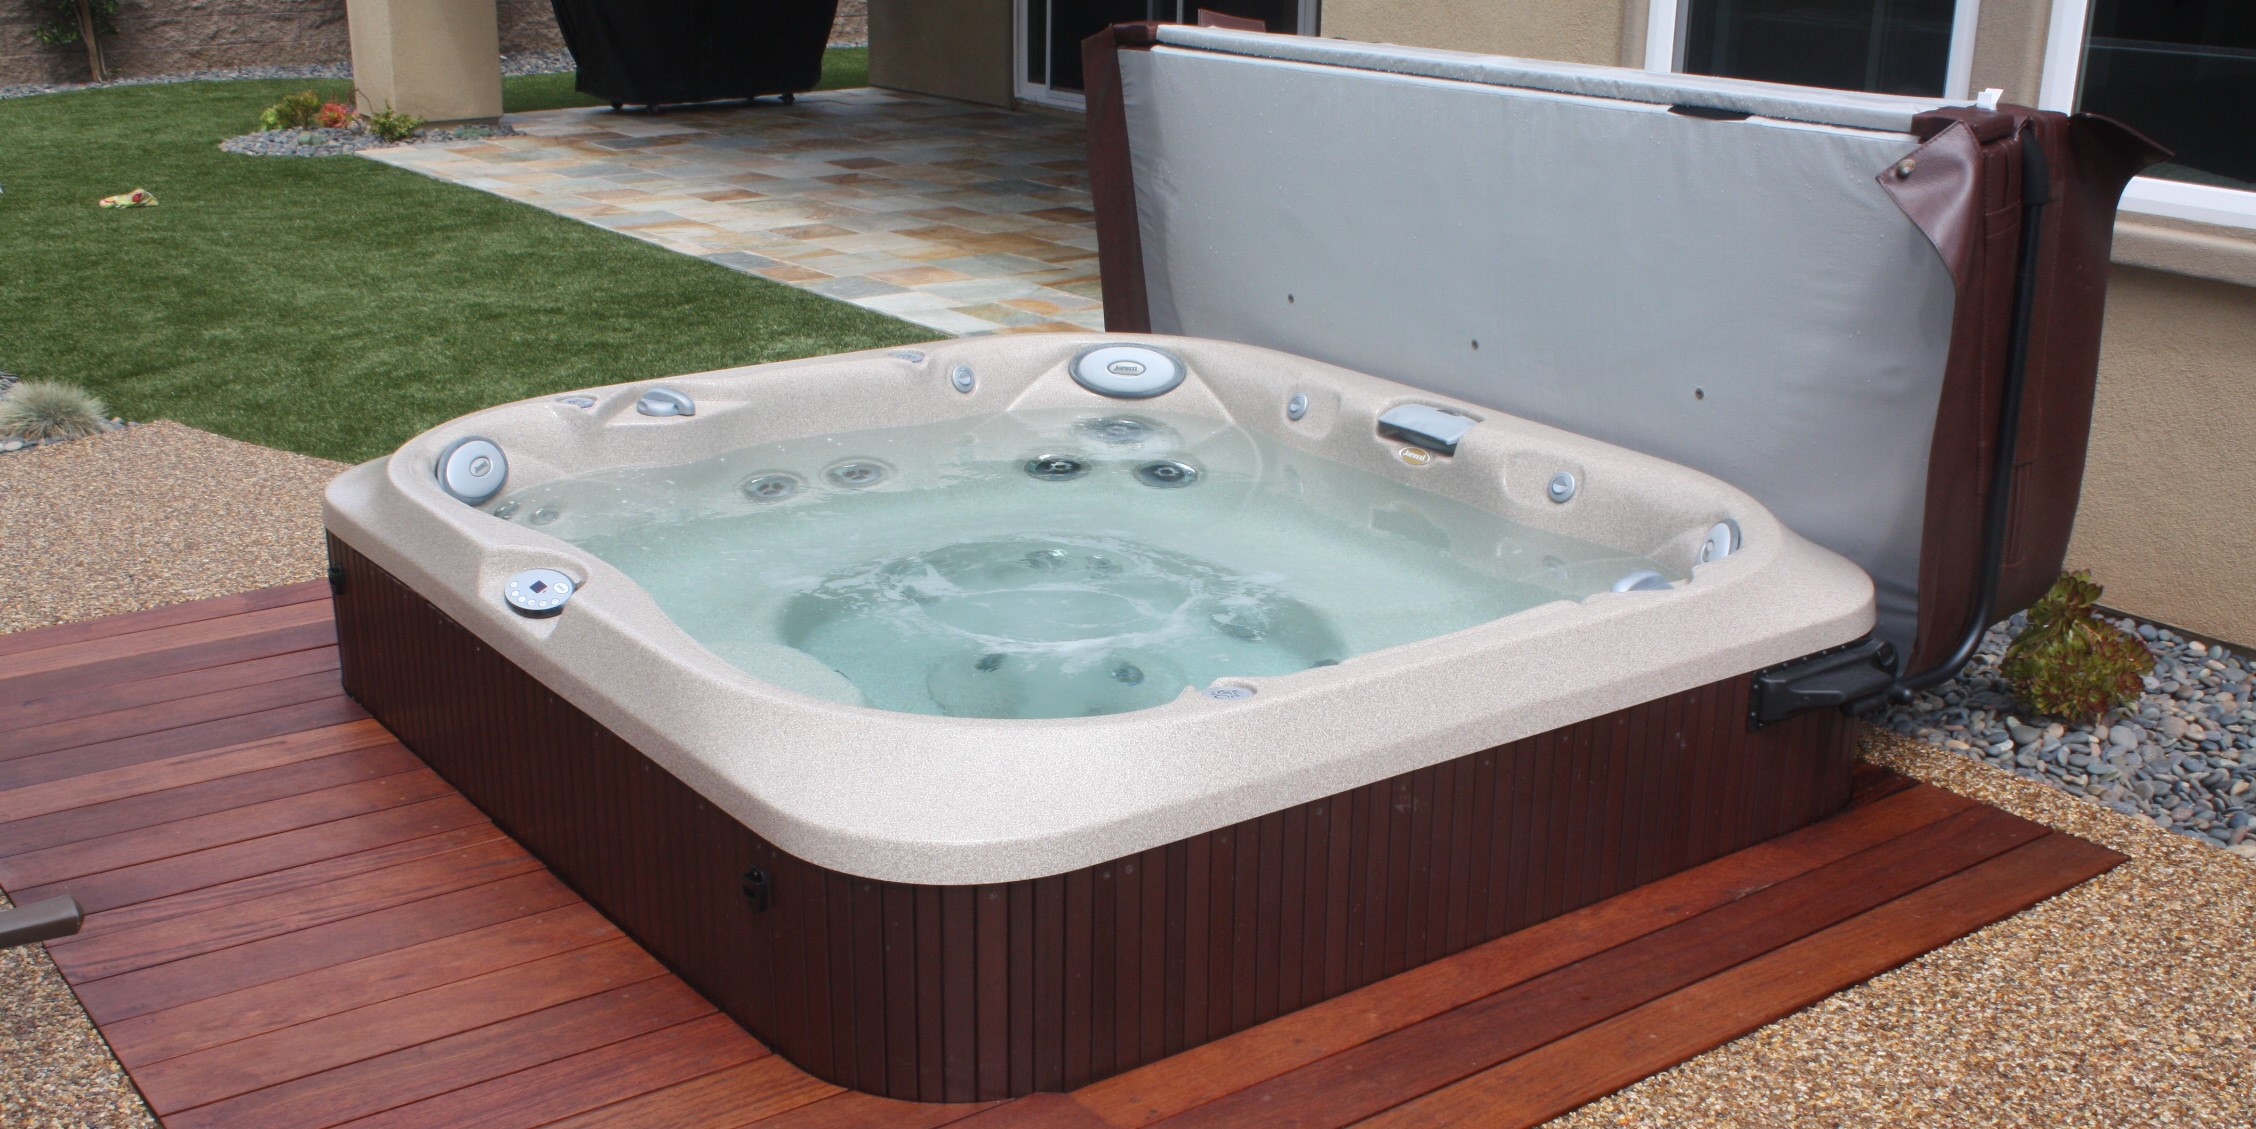 Jacuzzi Pool Dimensions Jacuzzi J365 Seats 6 7 Adults Jets 44